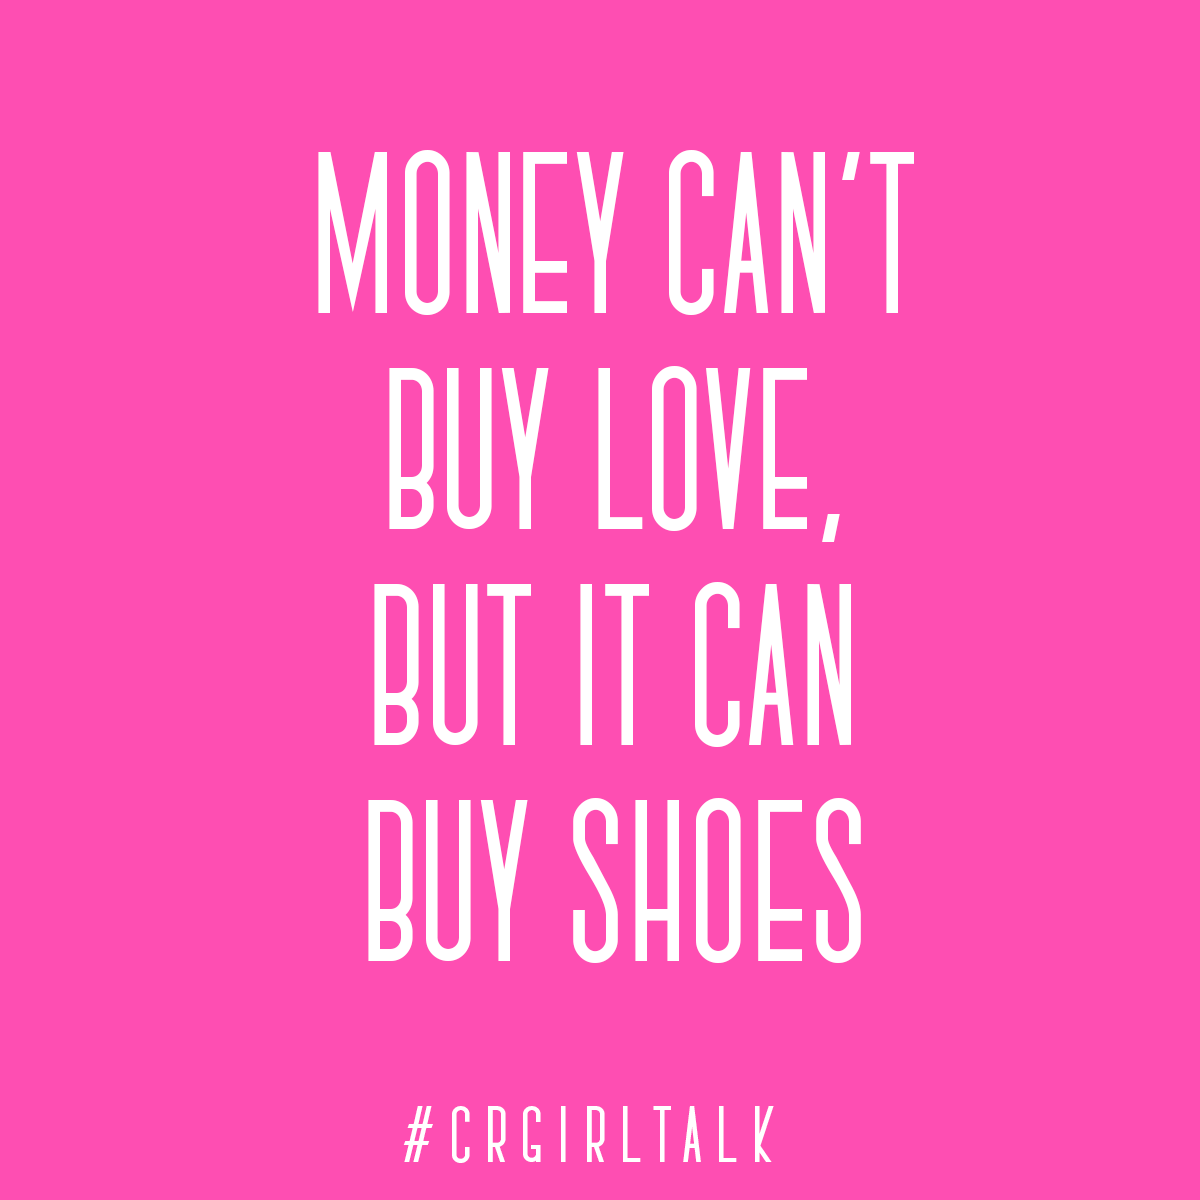 Money can t love but it can shoes CRGirlTalk